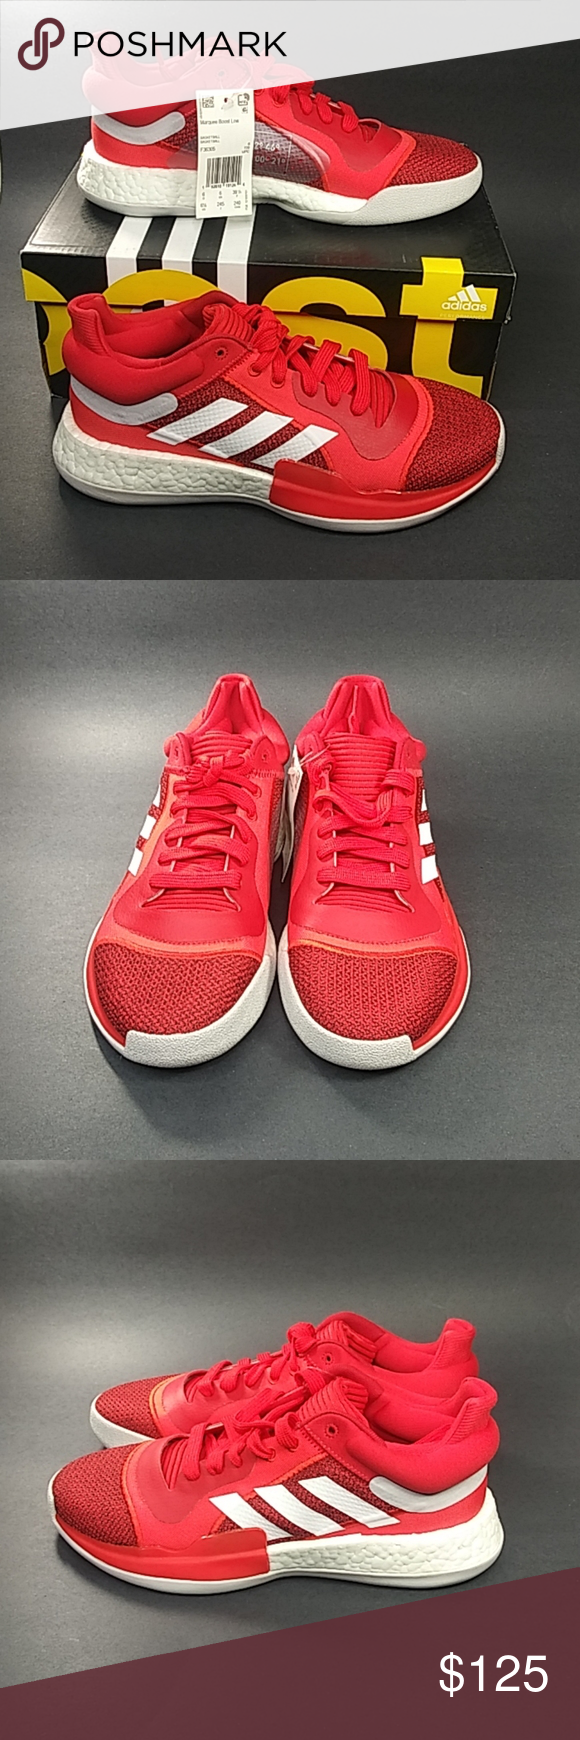 NEW Adidas Marquee Boost Low Active Red